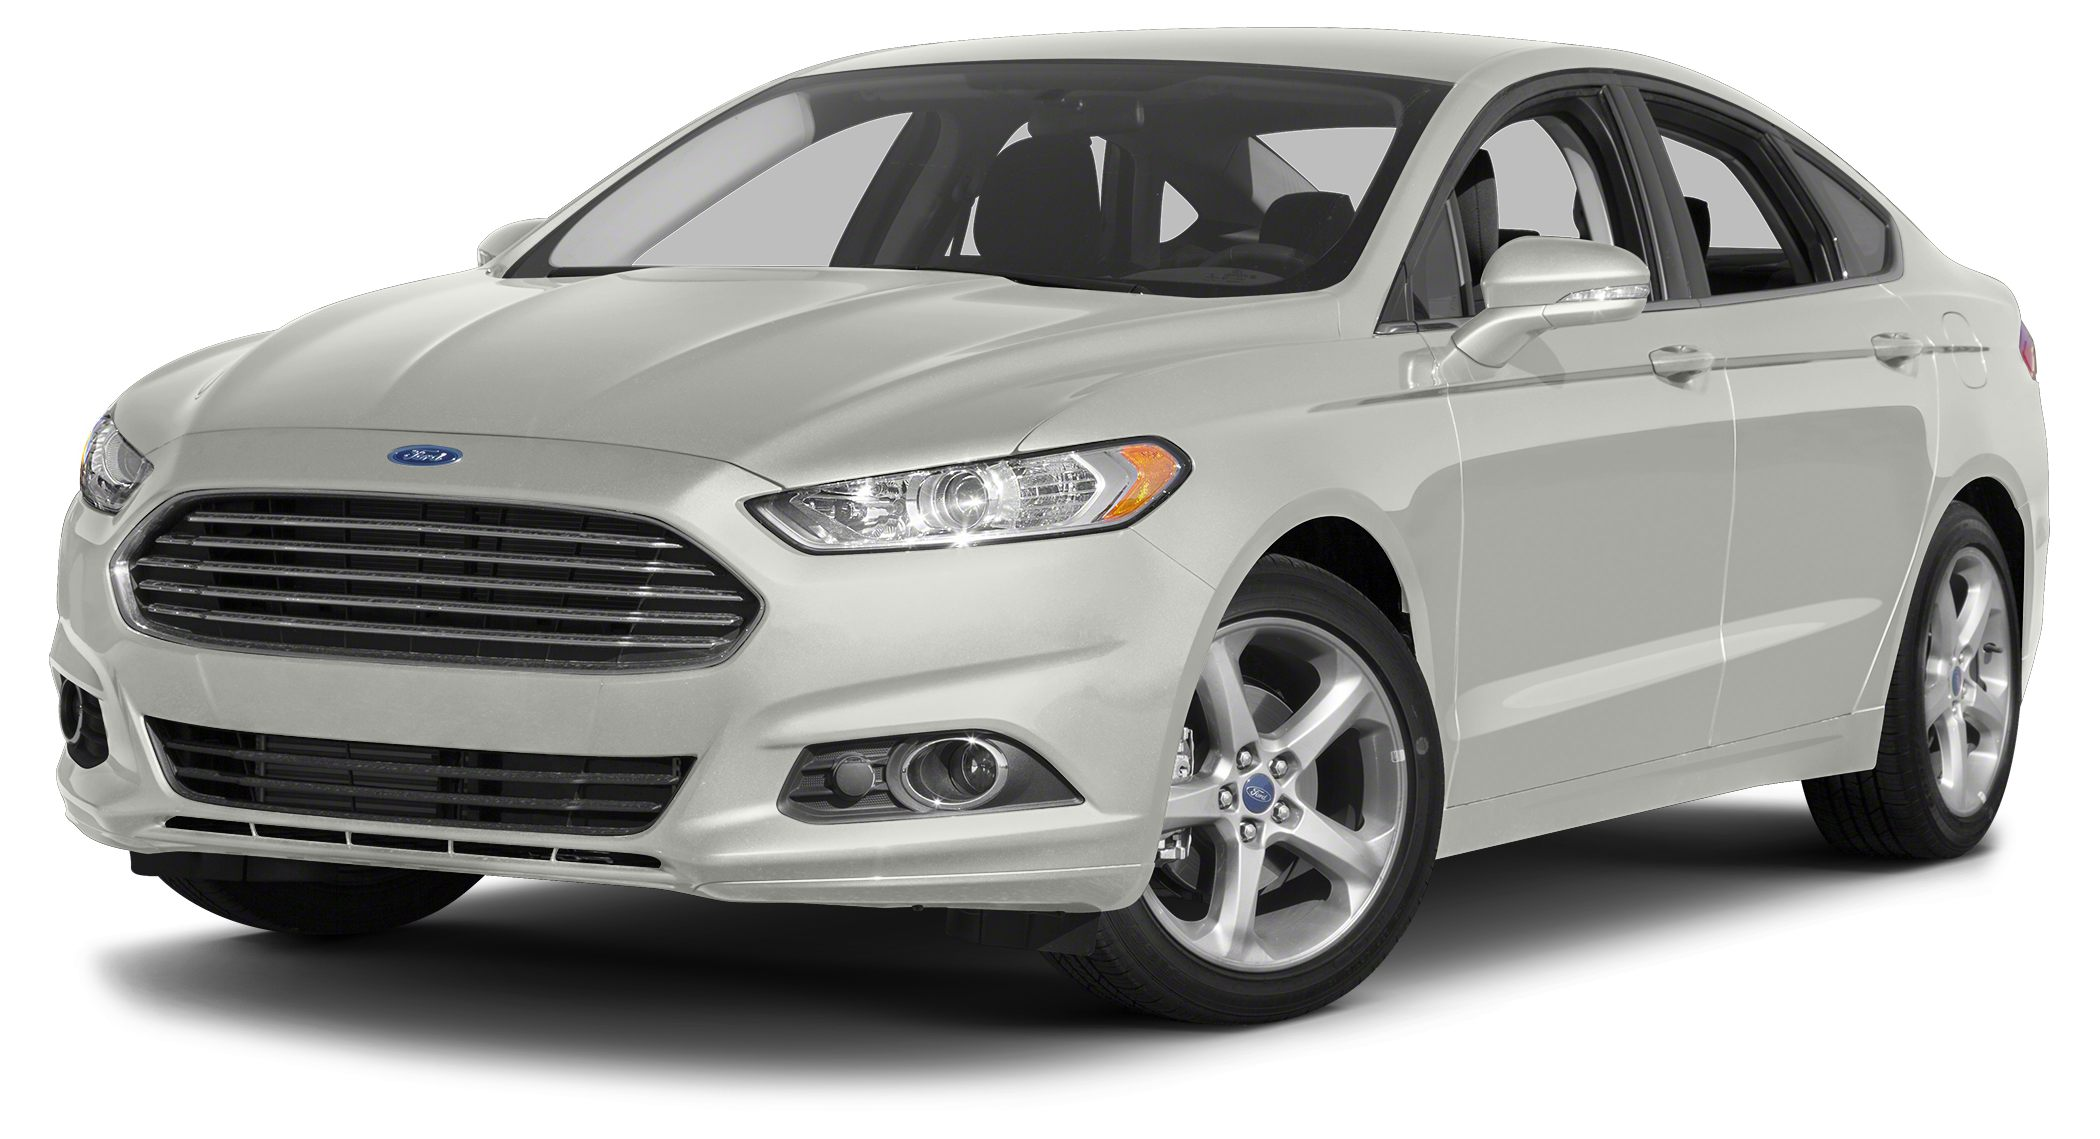 2015 Ford Fusion Titanium Miles 6Color Tuxedo Black Stock F306864 VIN 3FA6P0K98FR235293